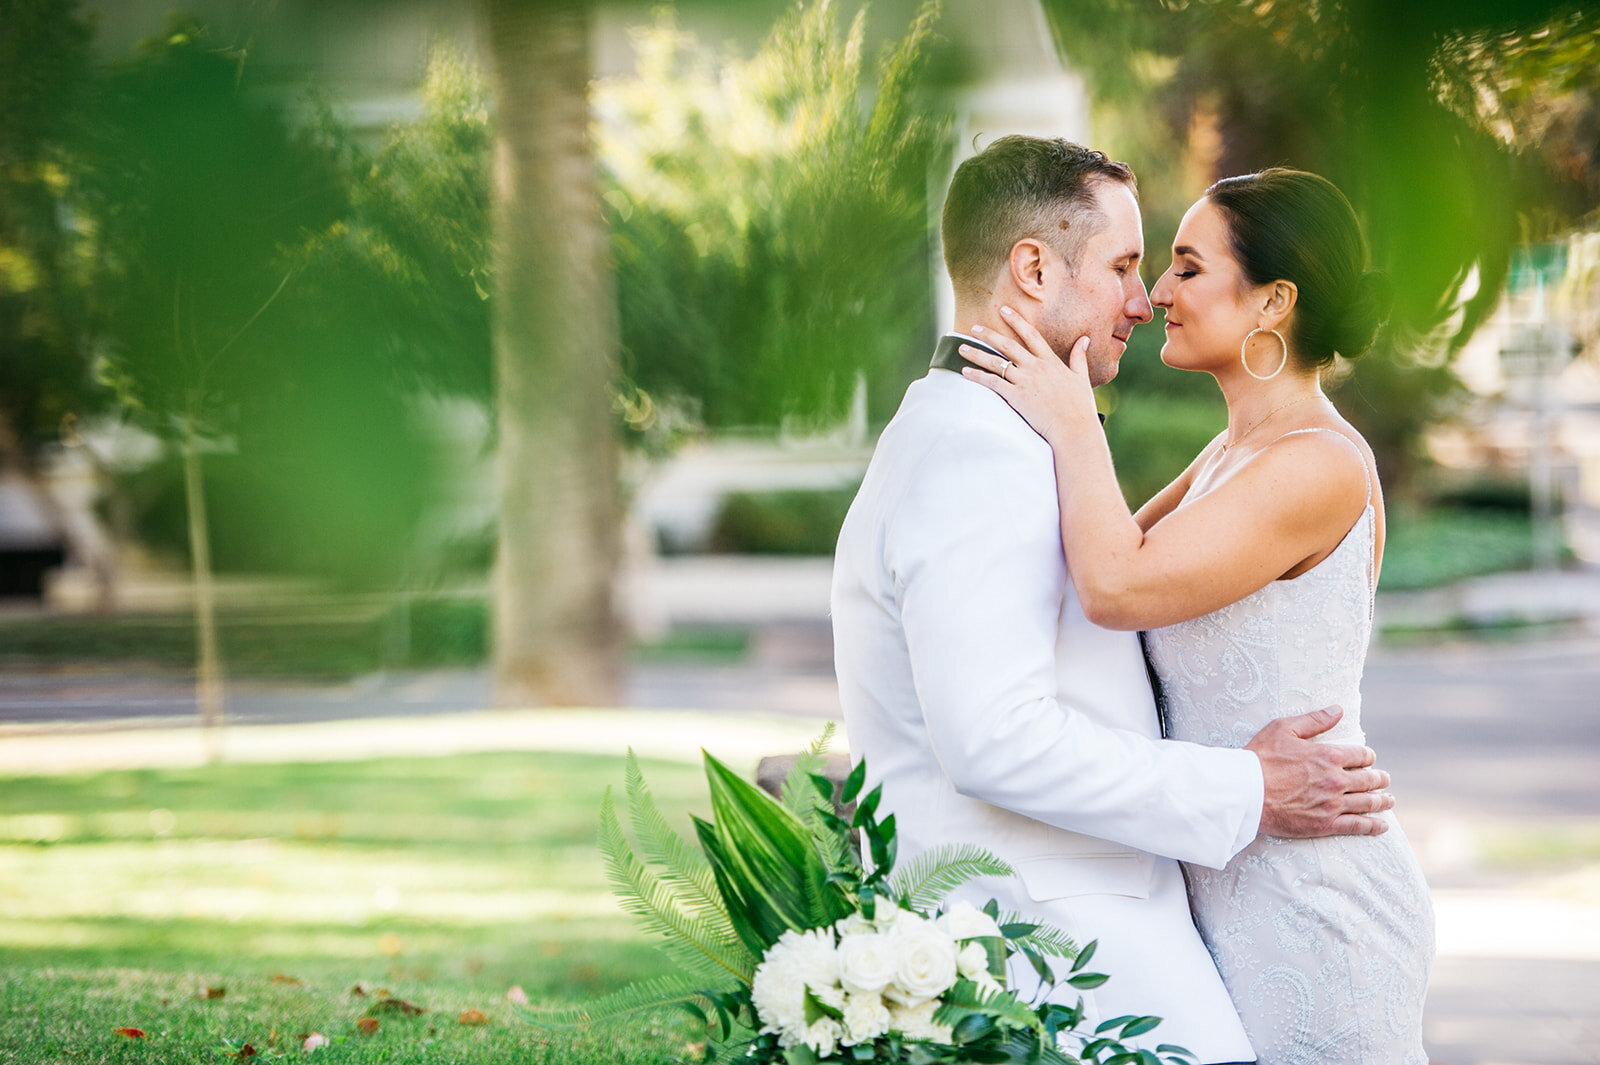 Couple engages in a kiss for a special moment after becoming husband and wife.